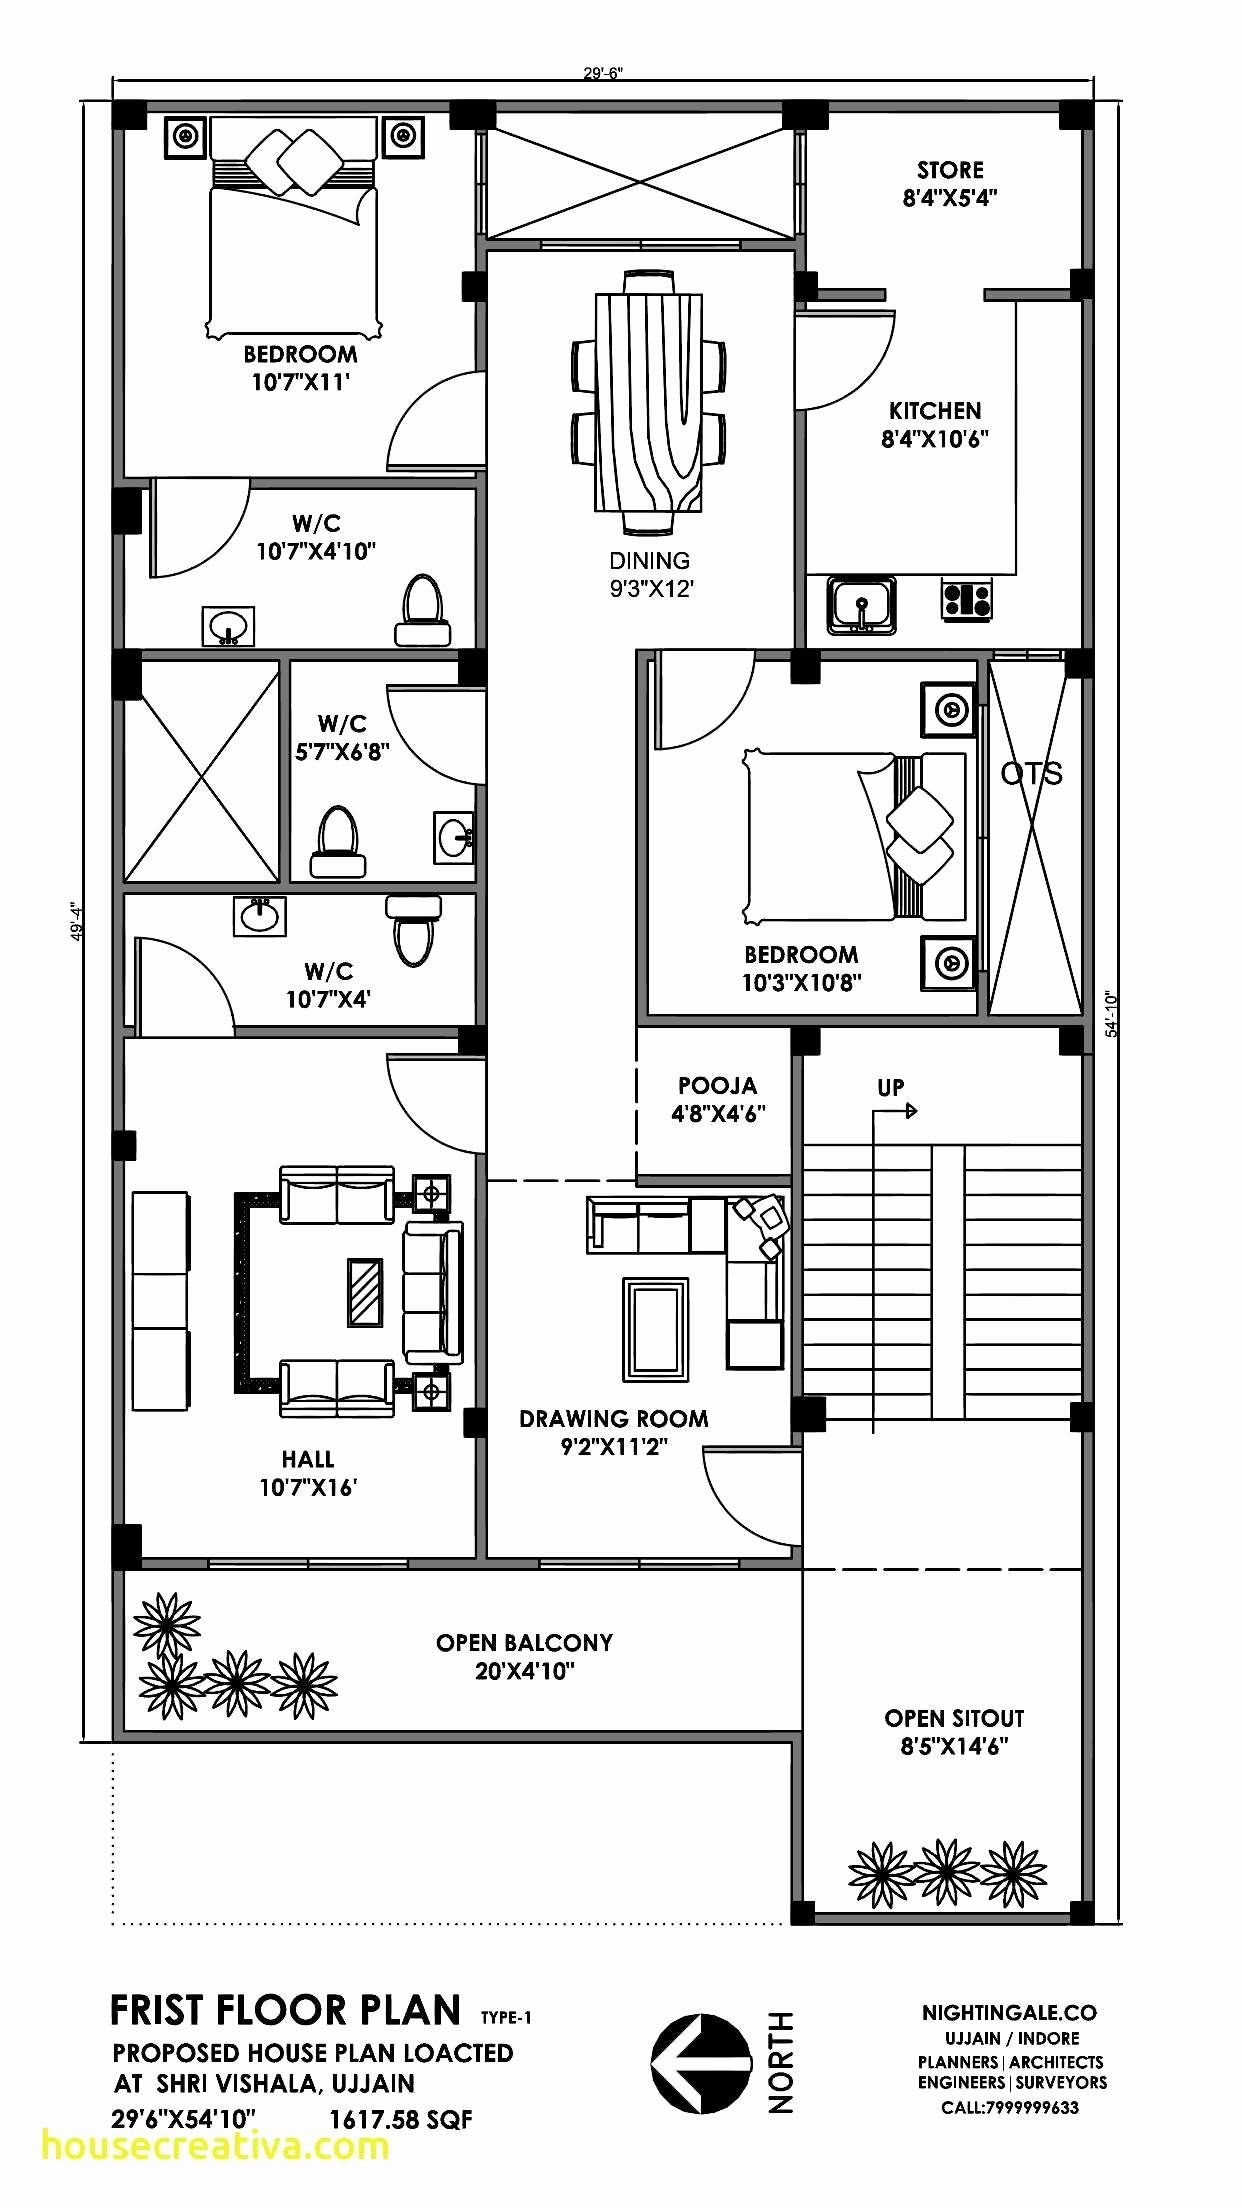 10 X 30 House Plans Best Of 30x50 3bhk House Plan 1500sqft Plan In 2019 20x30 House Plans 30x50 House Plans 40x60 House Plans